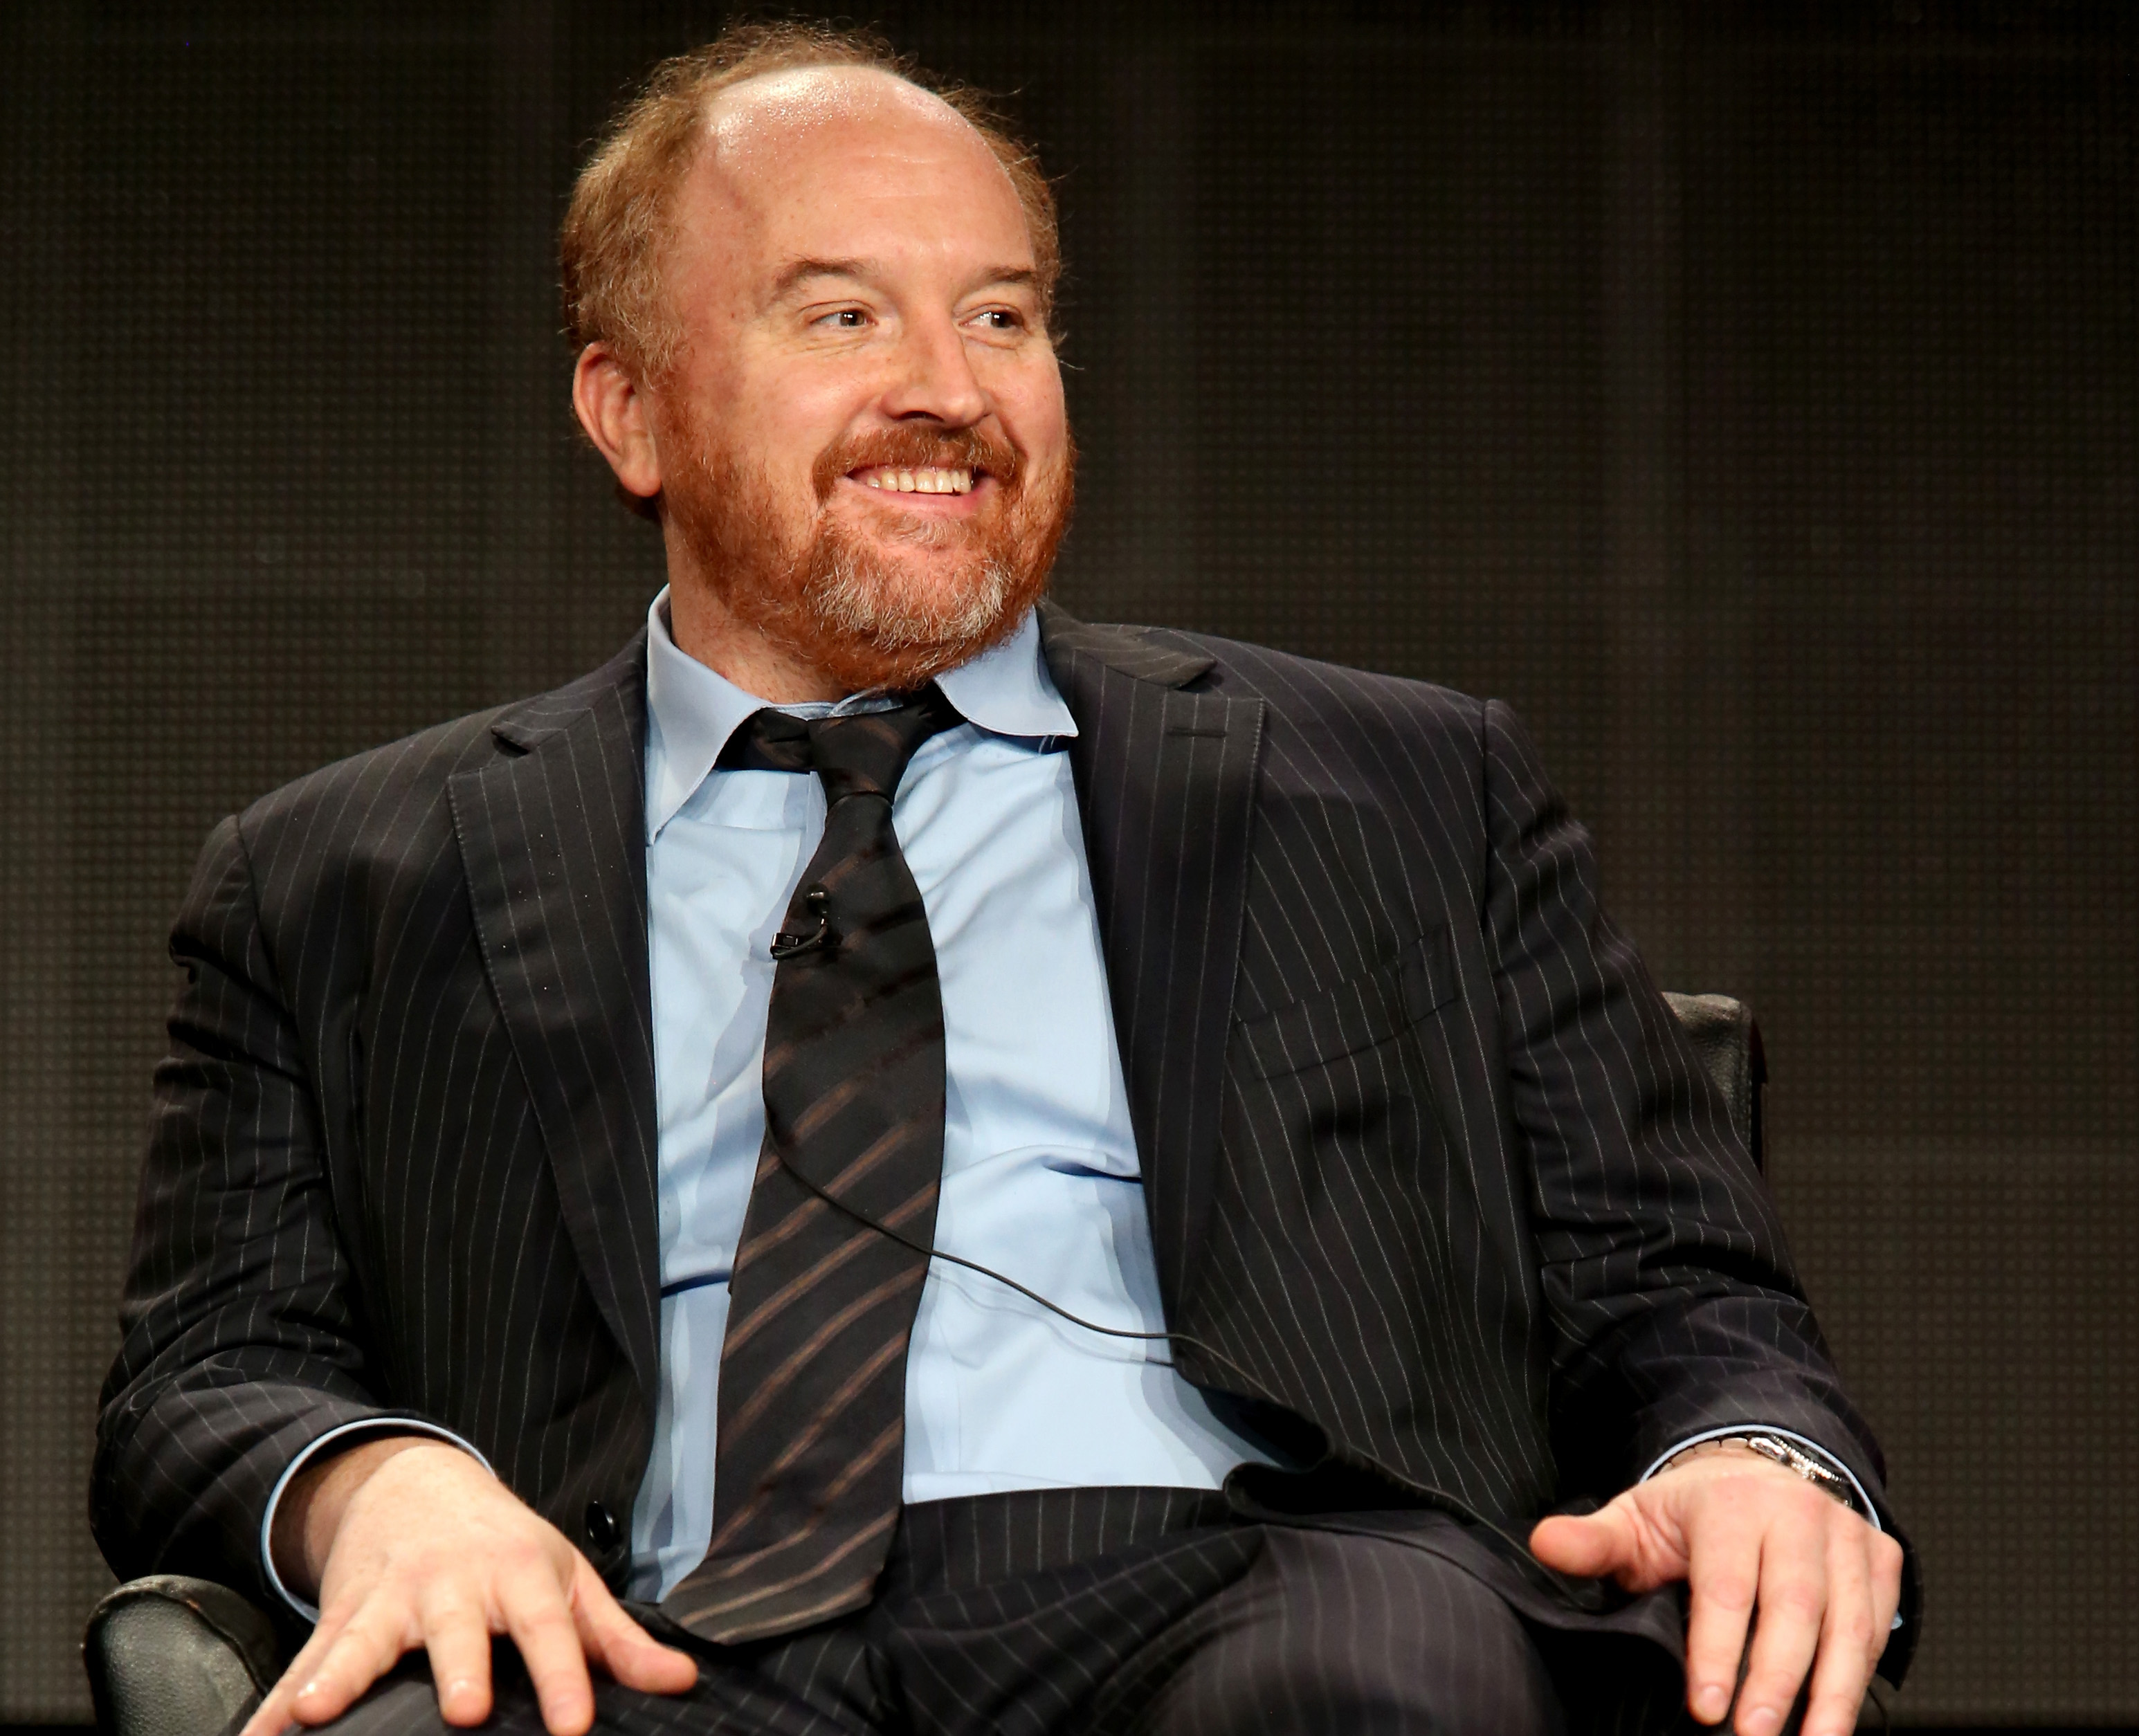 Creator/writer/actor Louis C.K. speaks onstage during the 'Louie' panel discussion at the FX Networks portion of the Television Critics Association press tour at Langham Hotel on Jan. 18, 2015 in Pasadena, Calif.